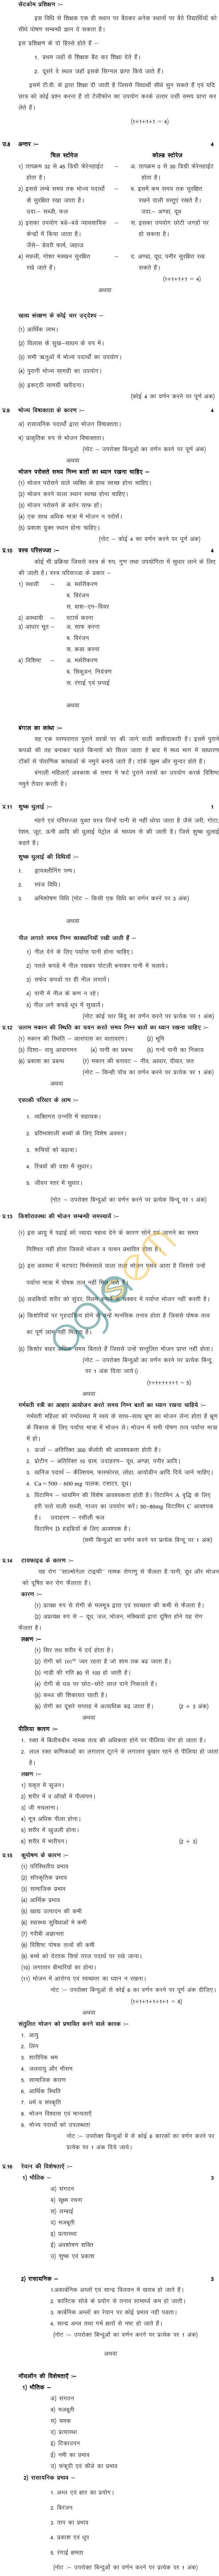 MP Board Class XII Home Mgmt Nutrition and Textile Model Questions & Answers - Set 2